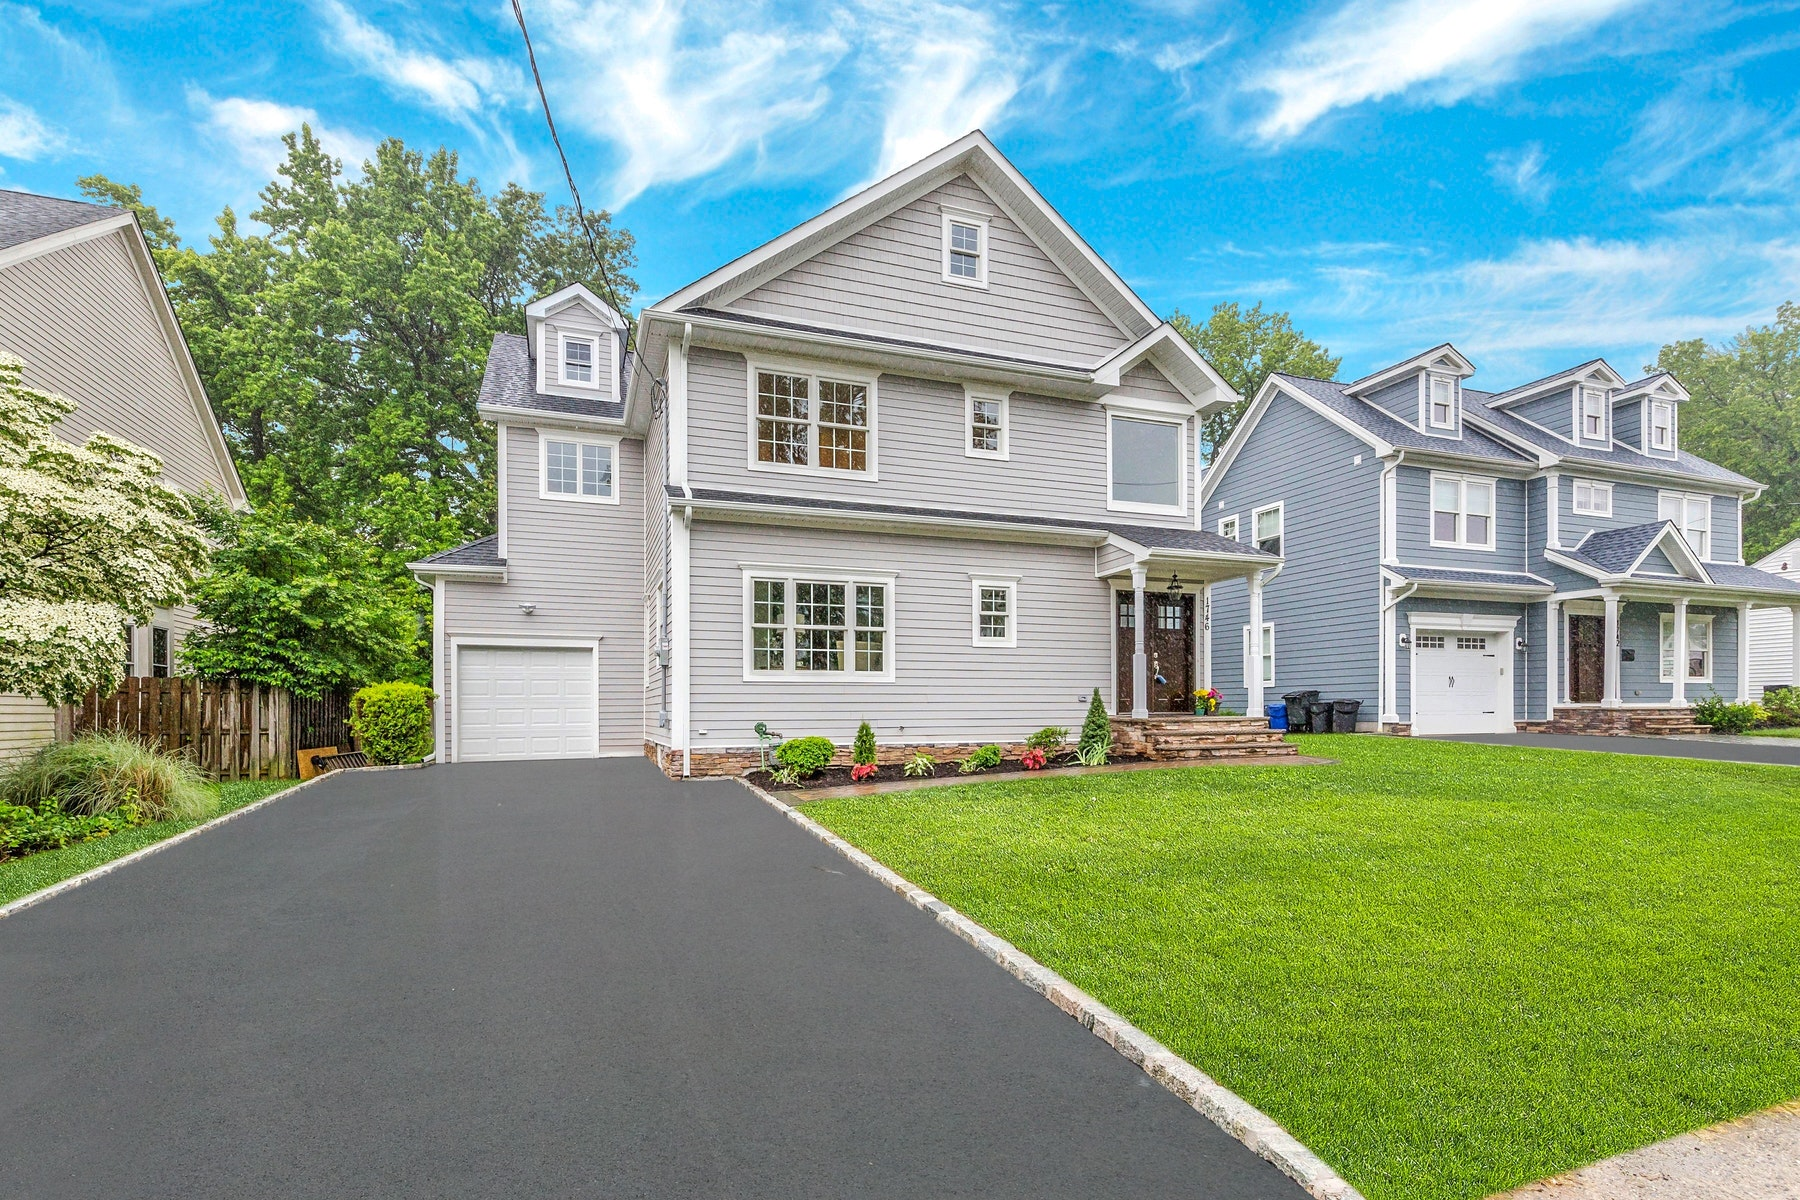 Single Family Homes for Sale at Live Modern 1746 Florida Street Westfield, New Jersey 07090 United States